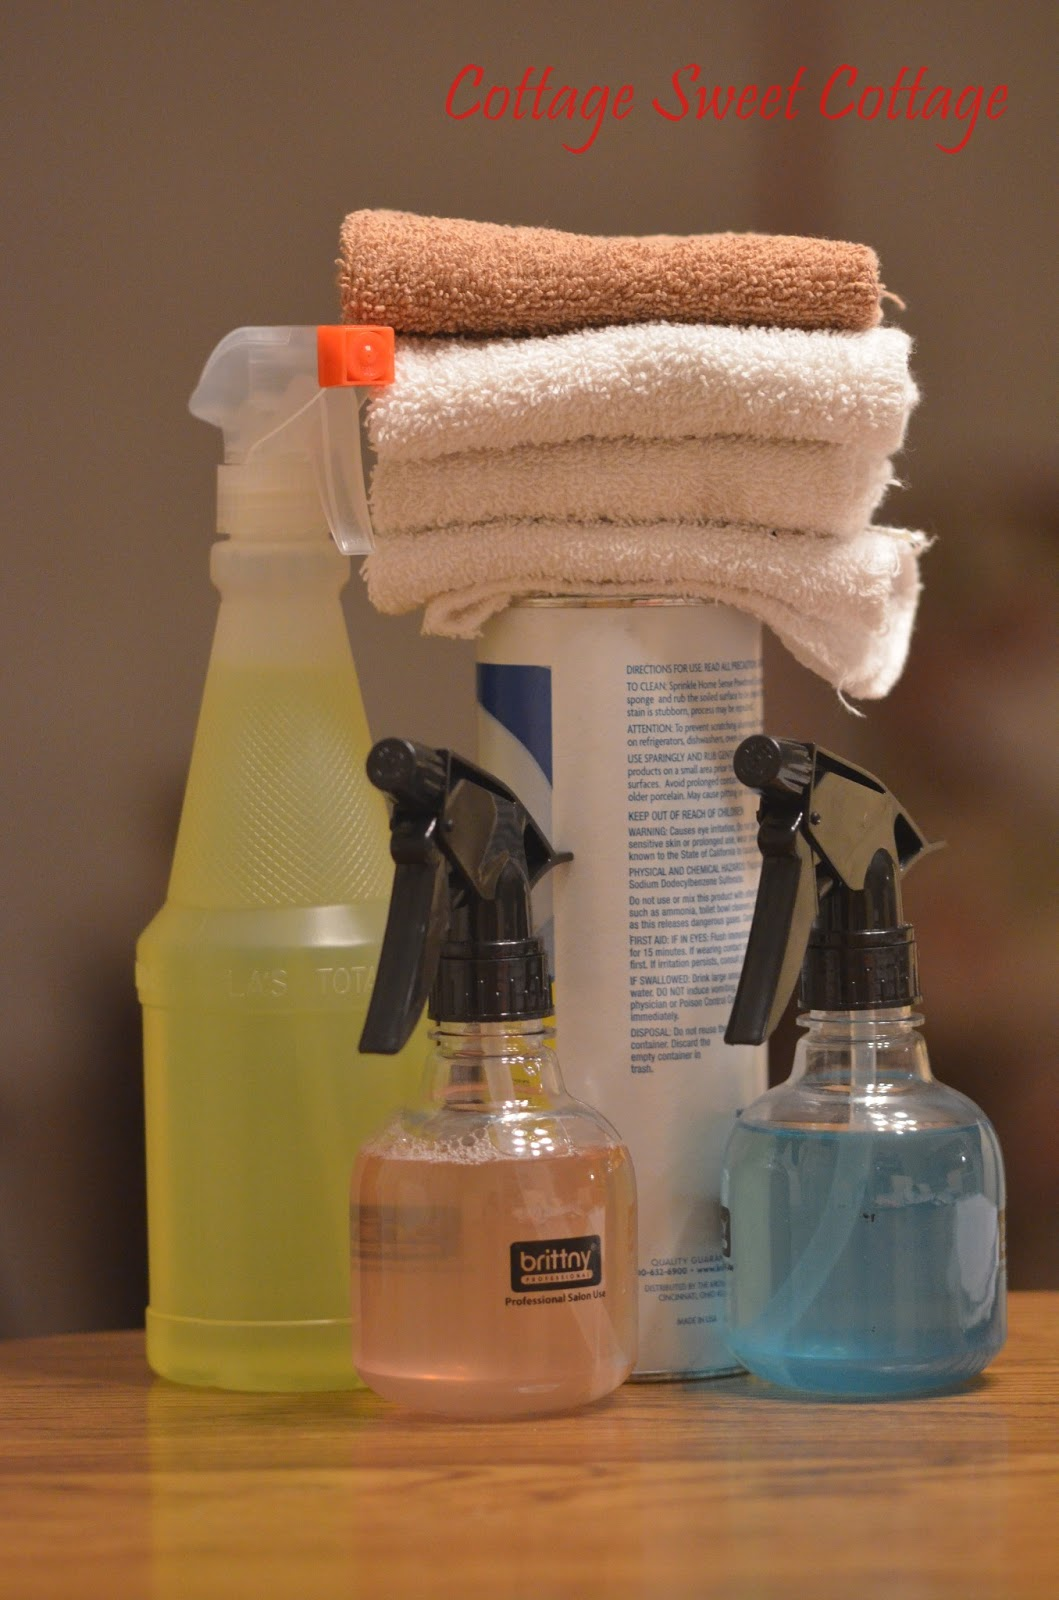 Cottage Sweet Cottage: 5 Cleaning Supplies I Keep In My